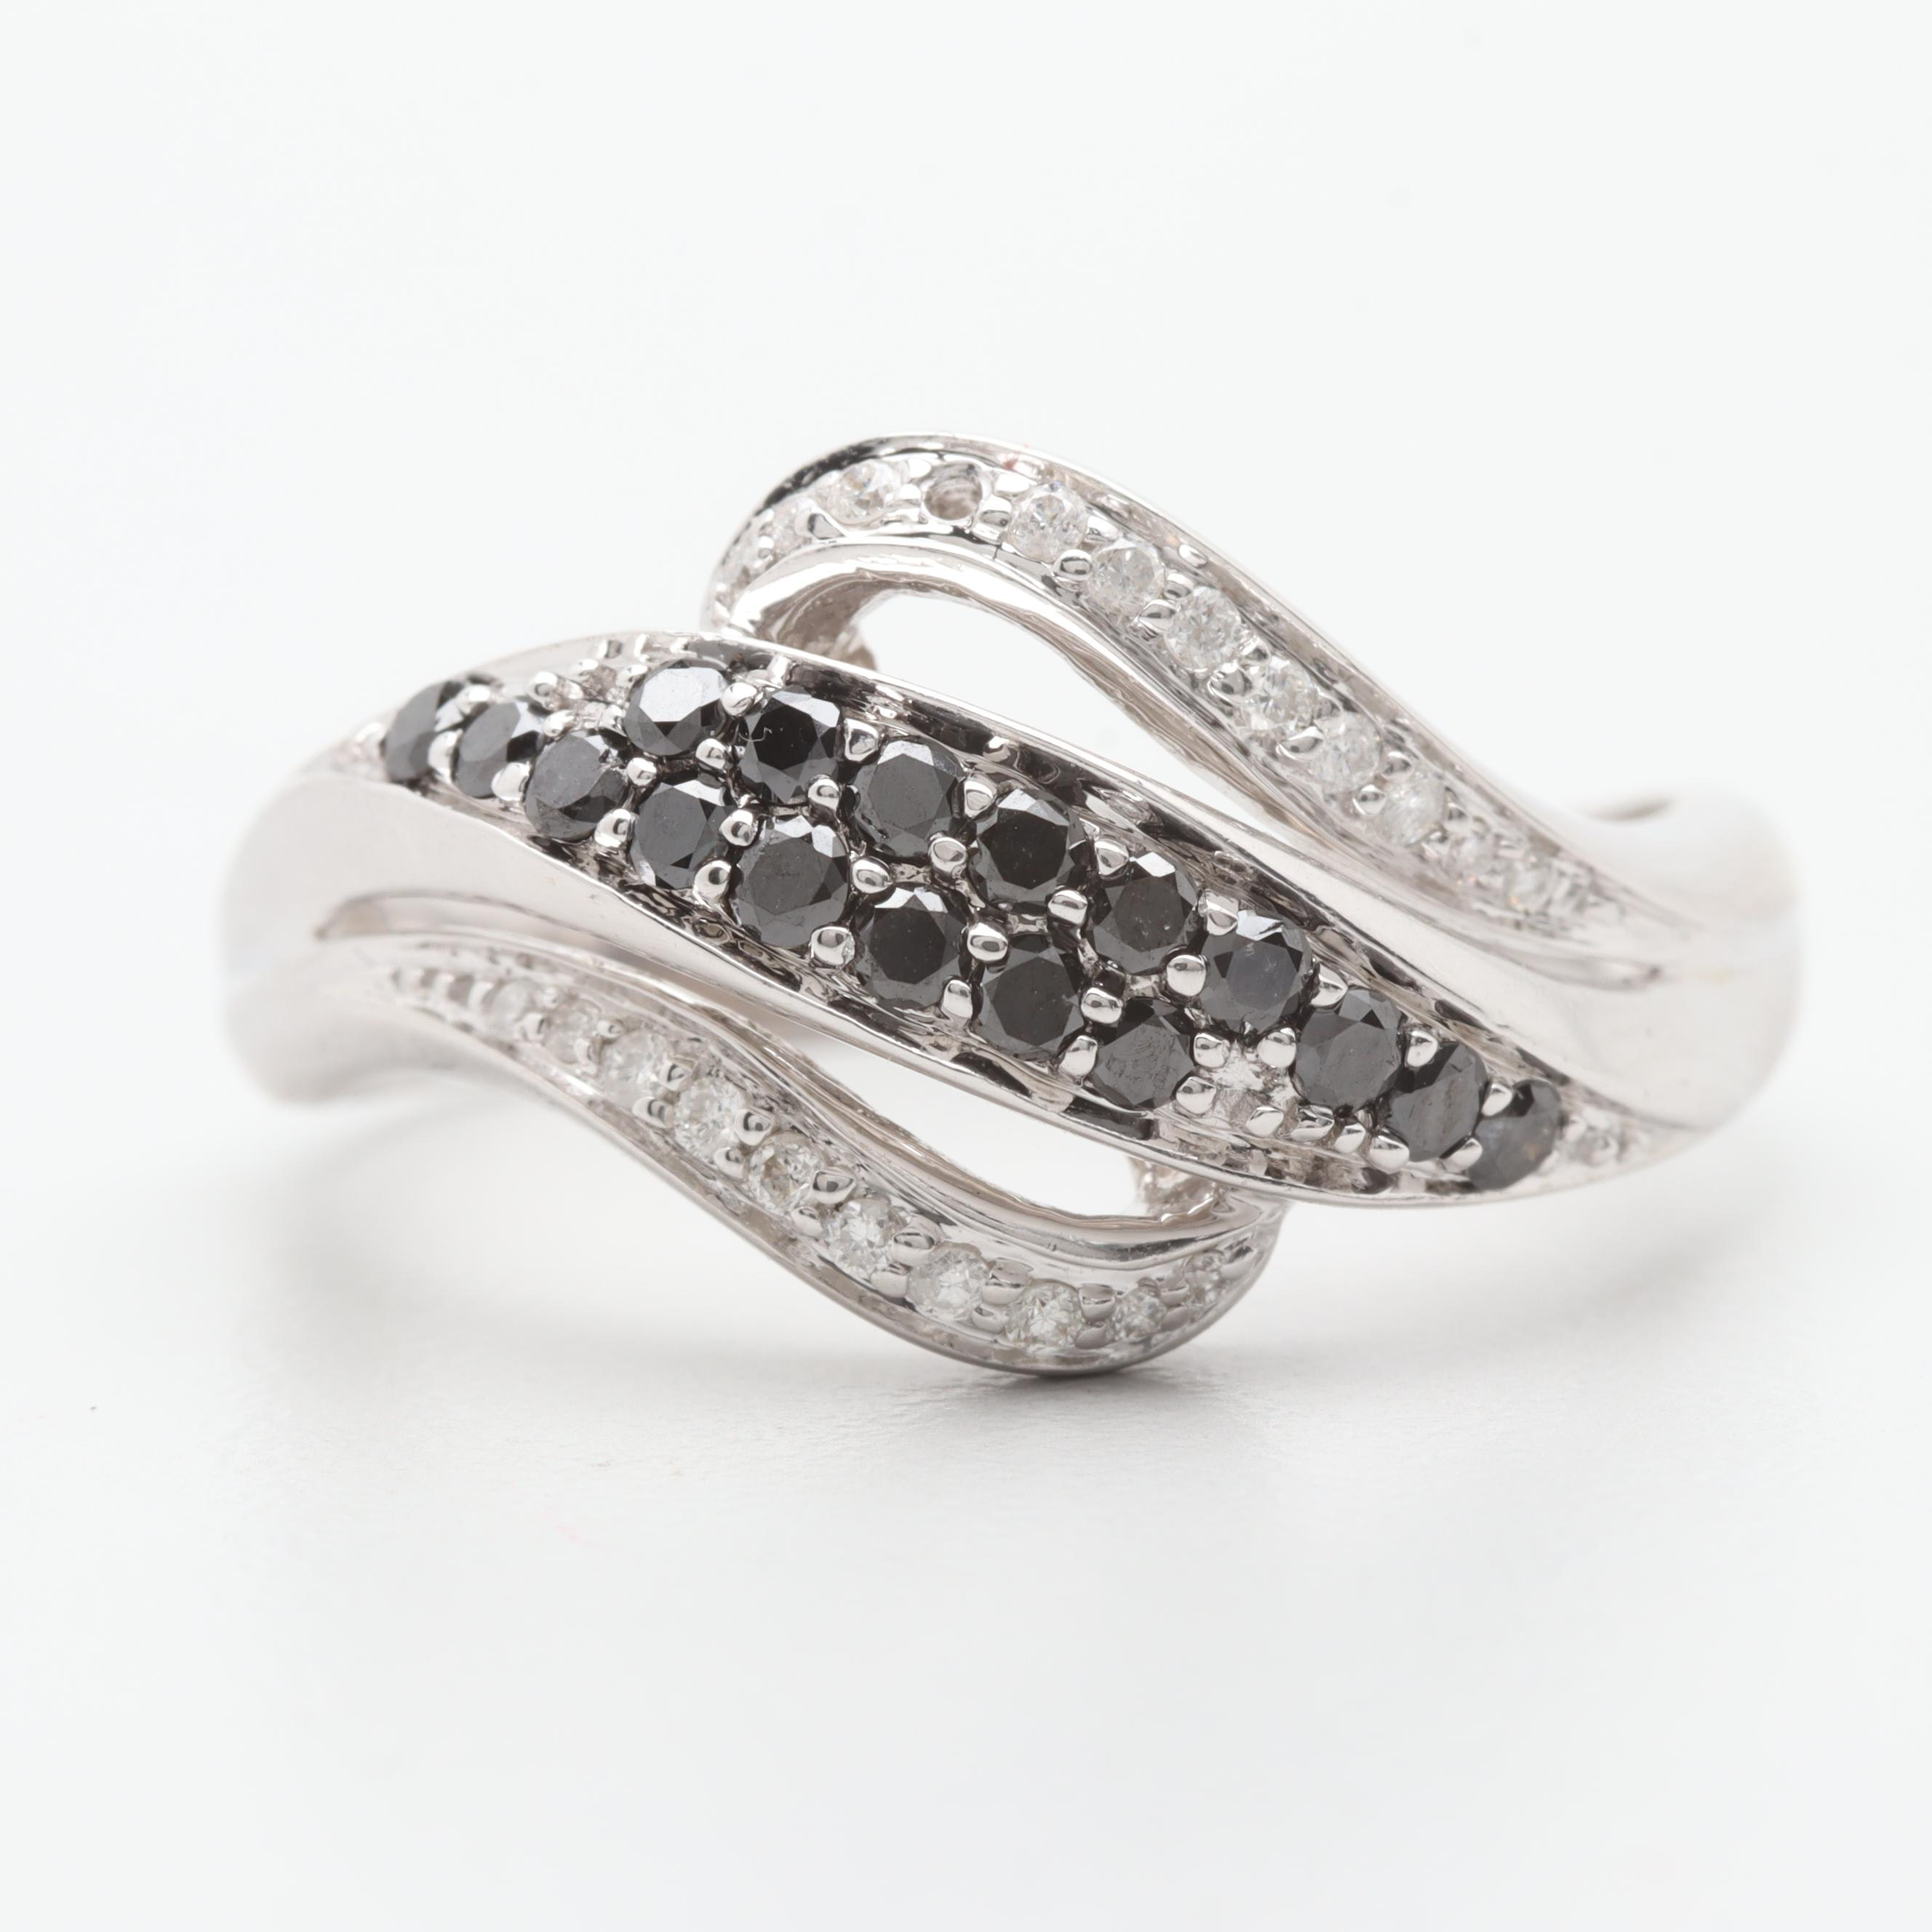 14K White Gold Diamond Ring Including Irradiated Black Diamonds